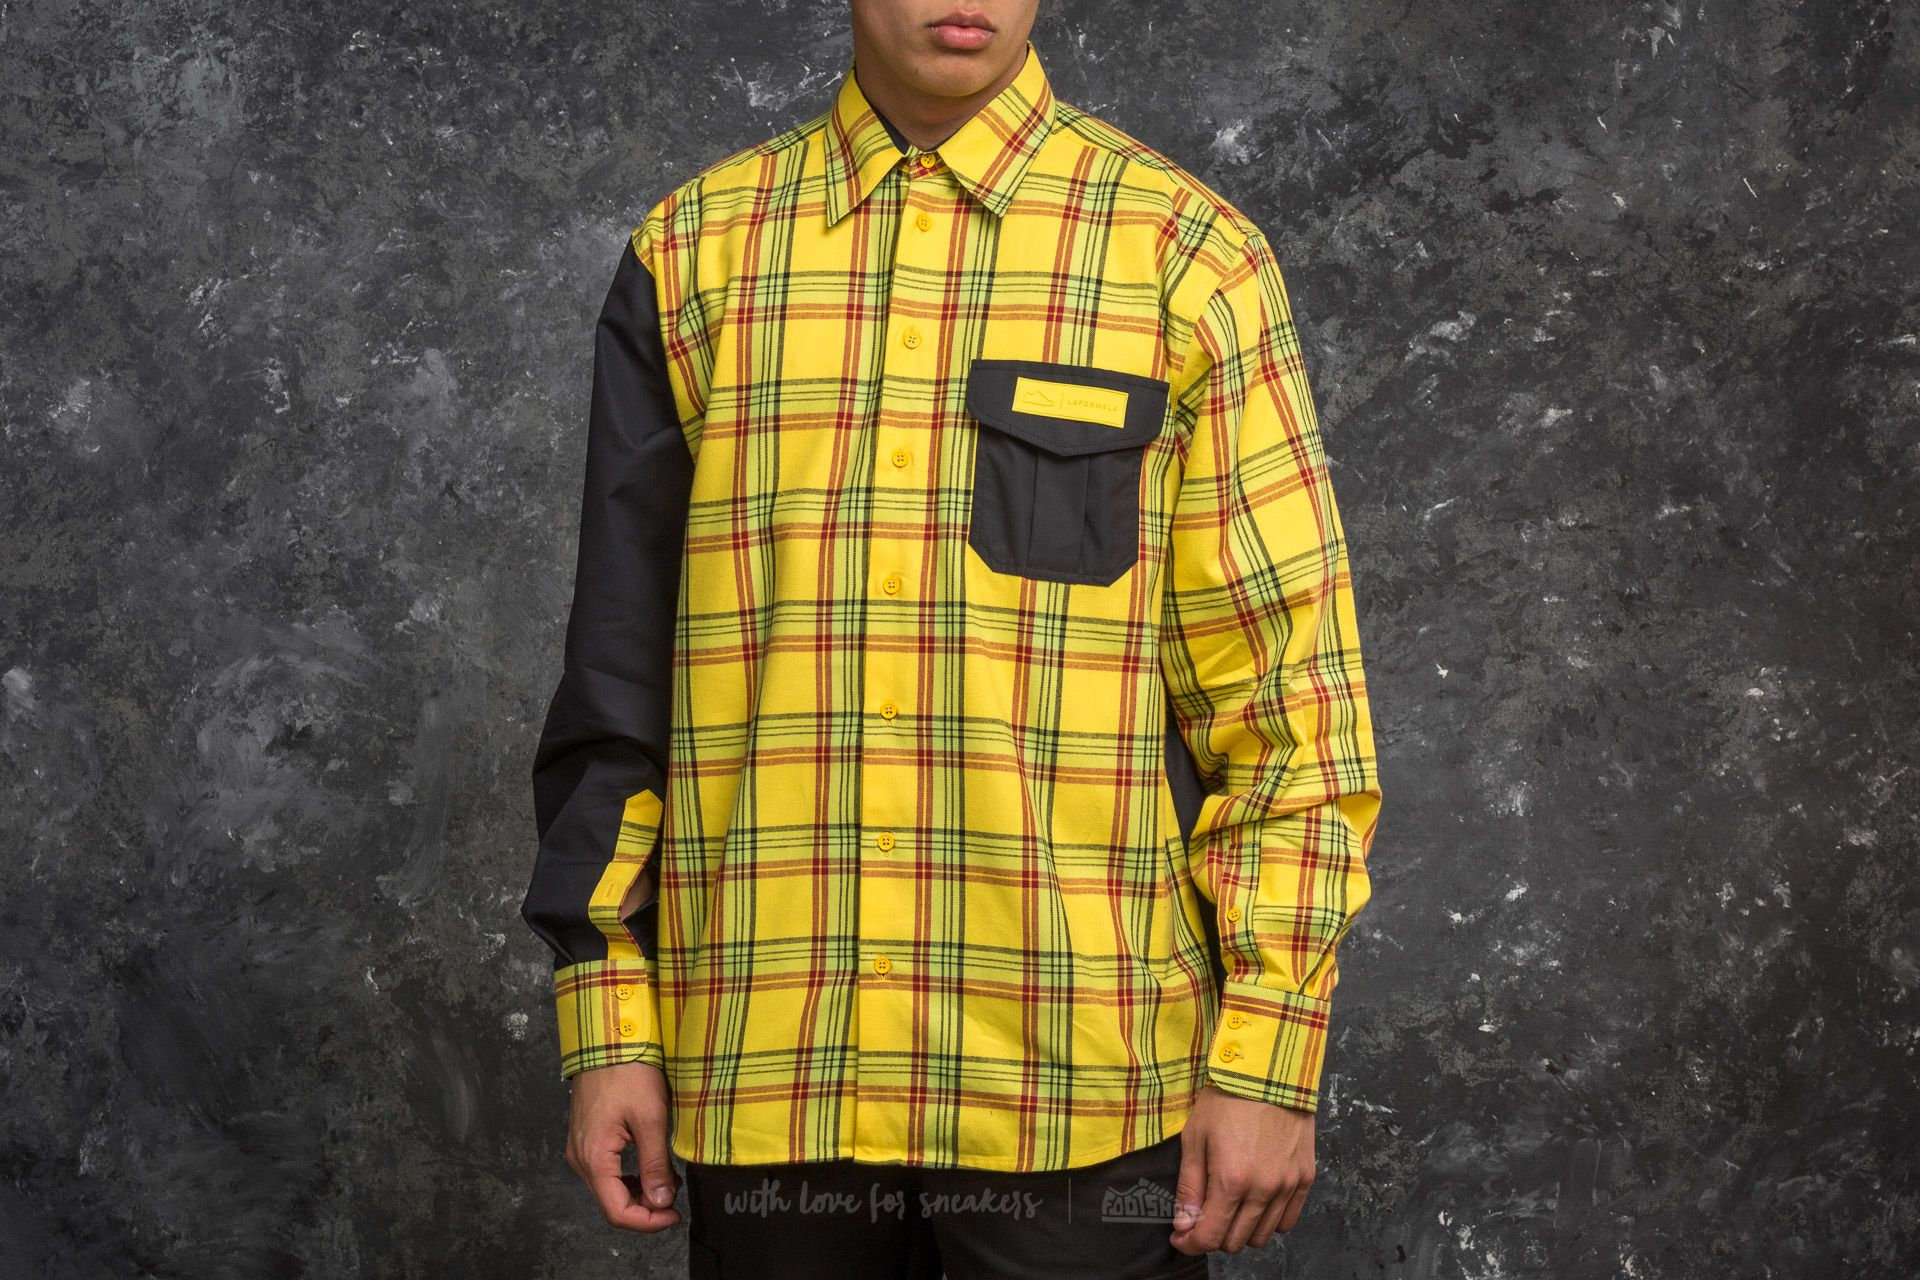 Footshop x LAFORMELA Shirt Yellow/ Black - 15174